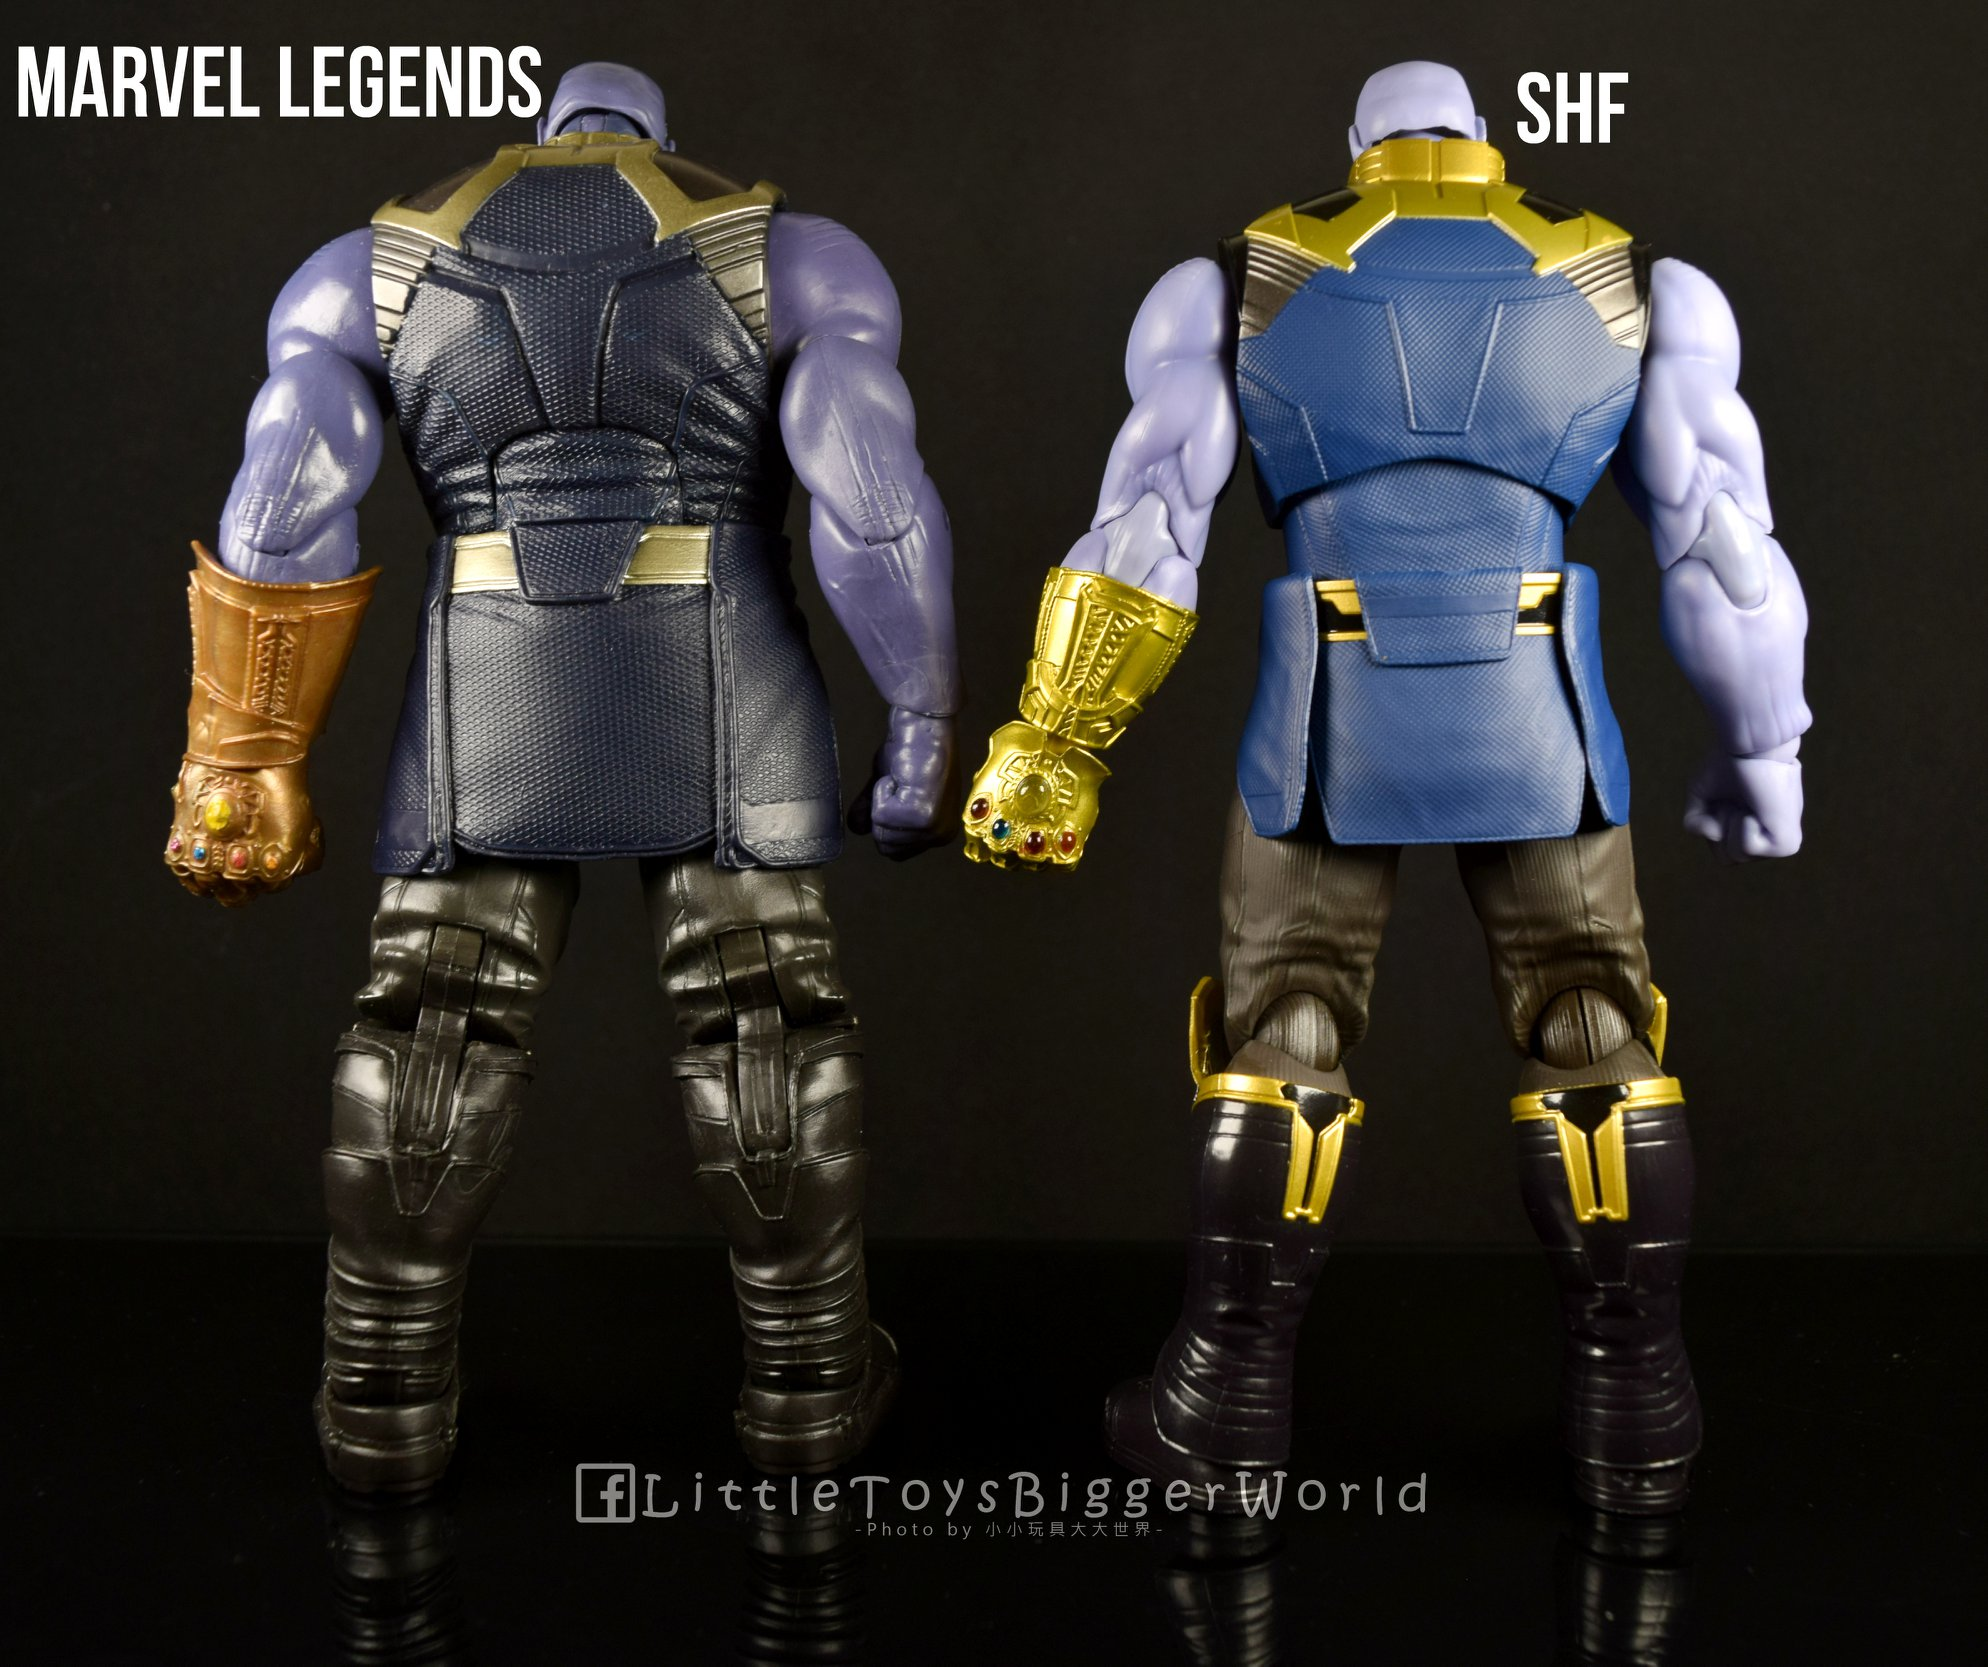 Marvel Legends (2012 - en cours) (Hasbro) - Page 9 QLLf41YW_o